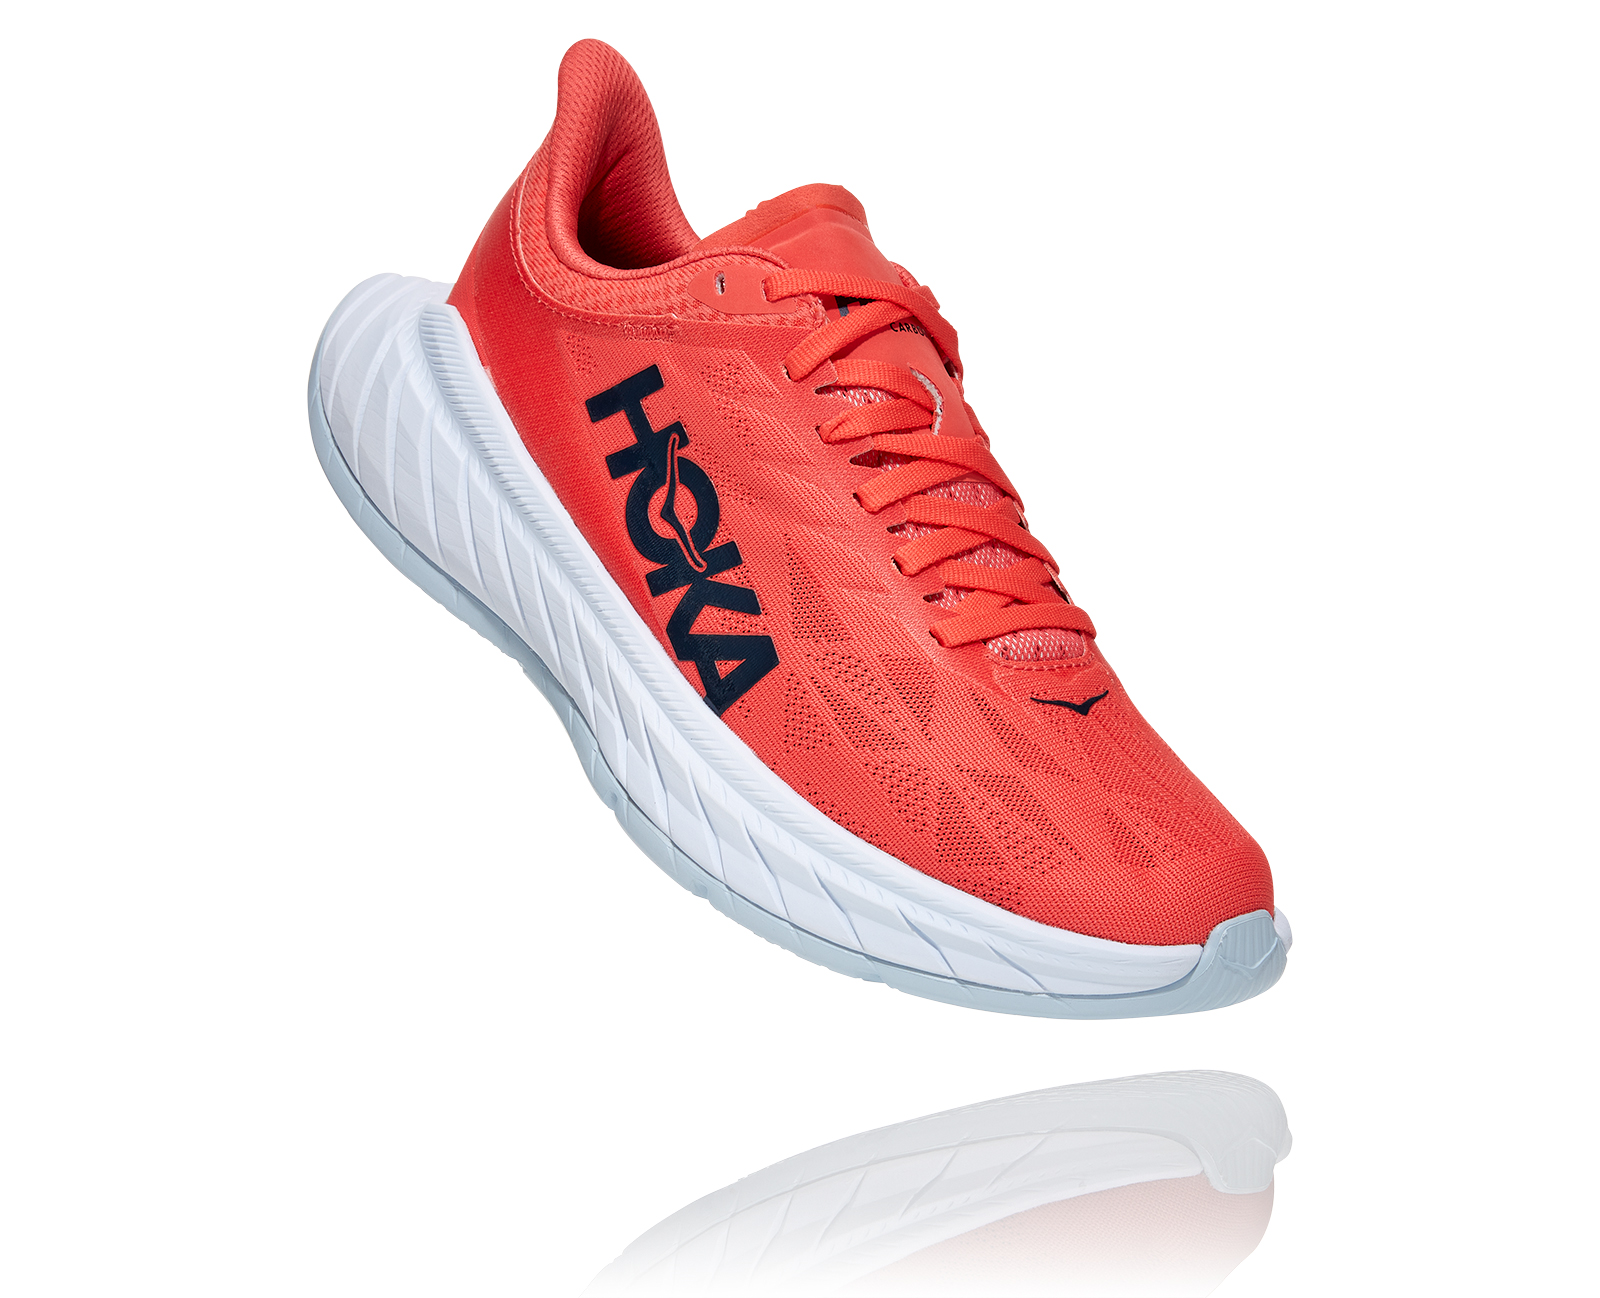 HOKA CARBON X 2 - WOMEN'S